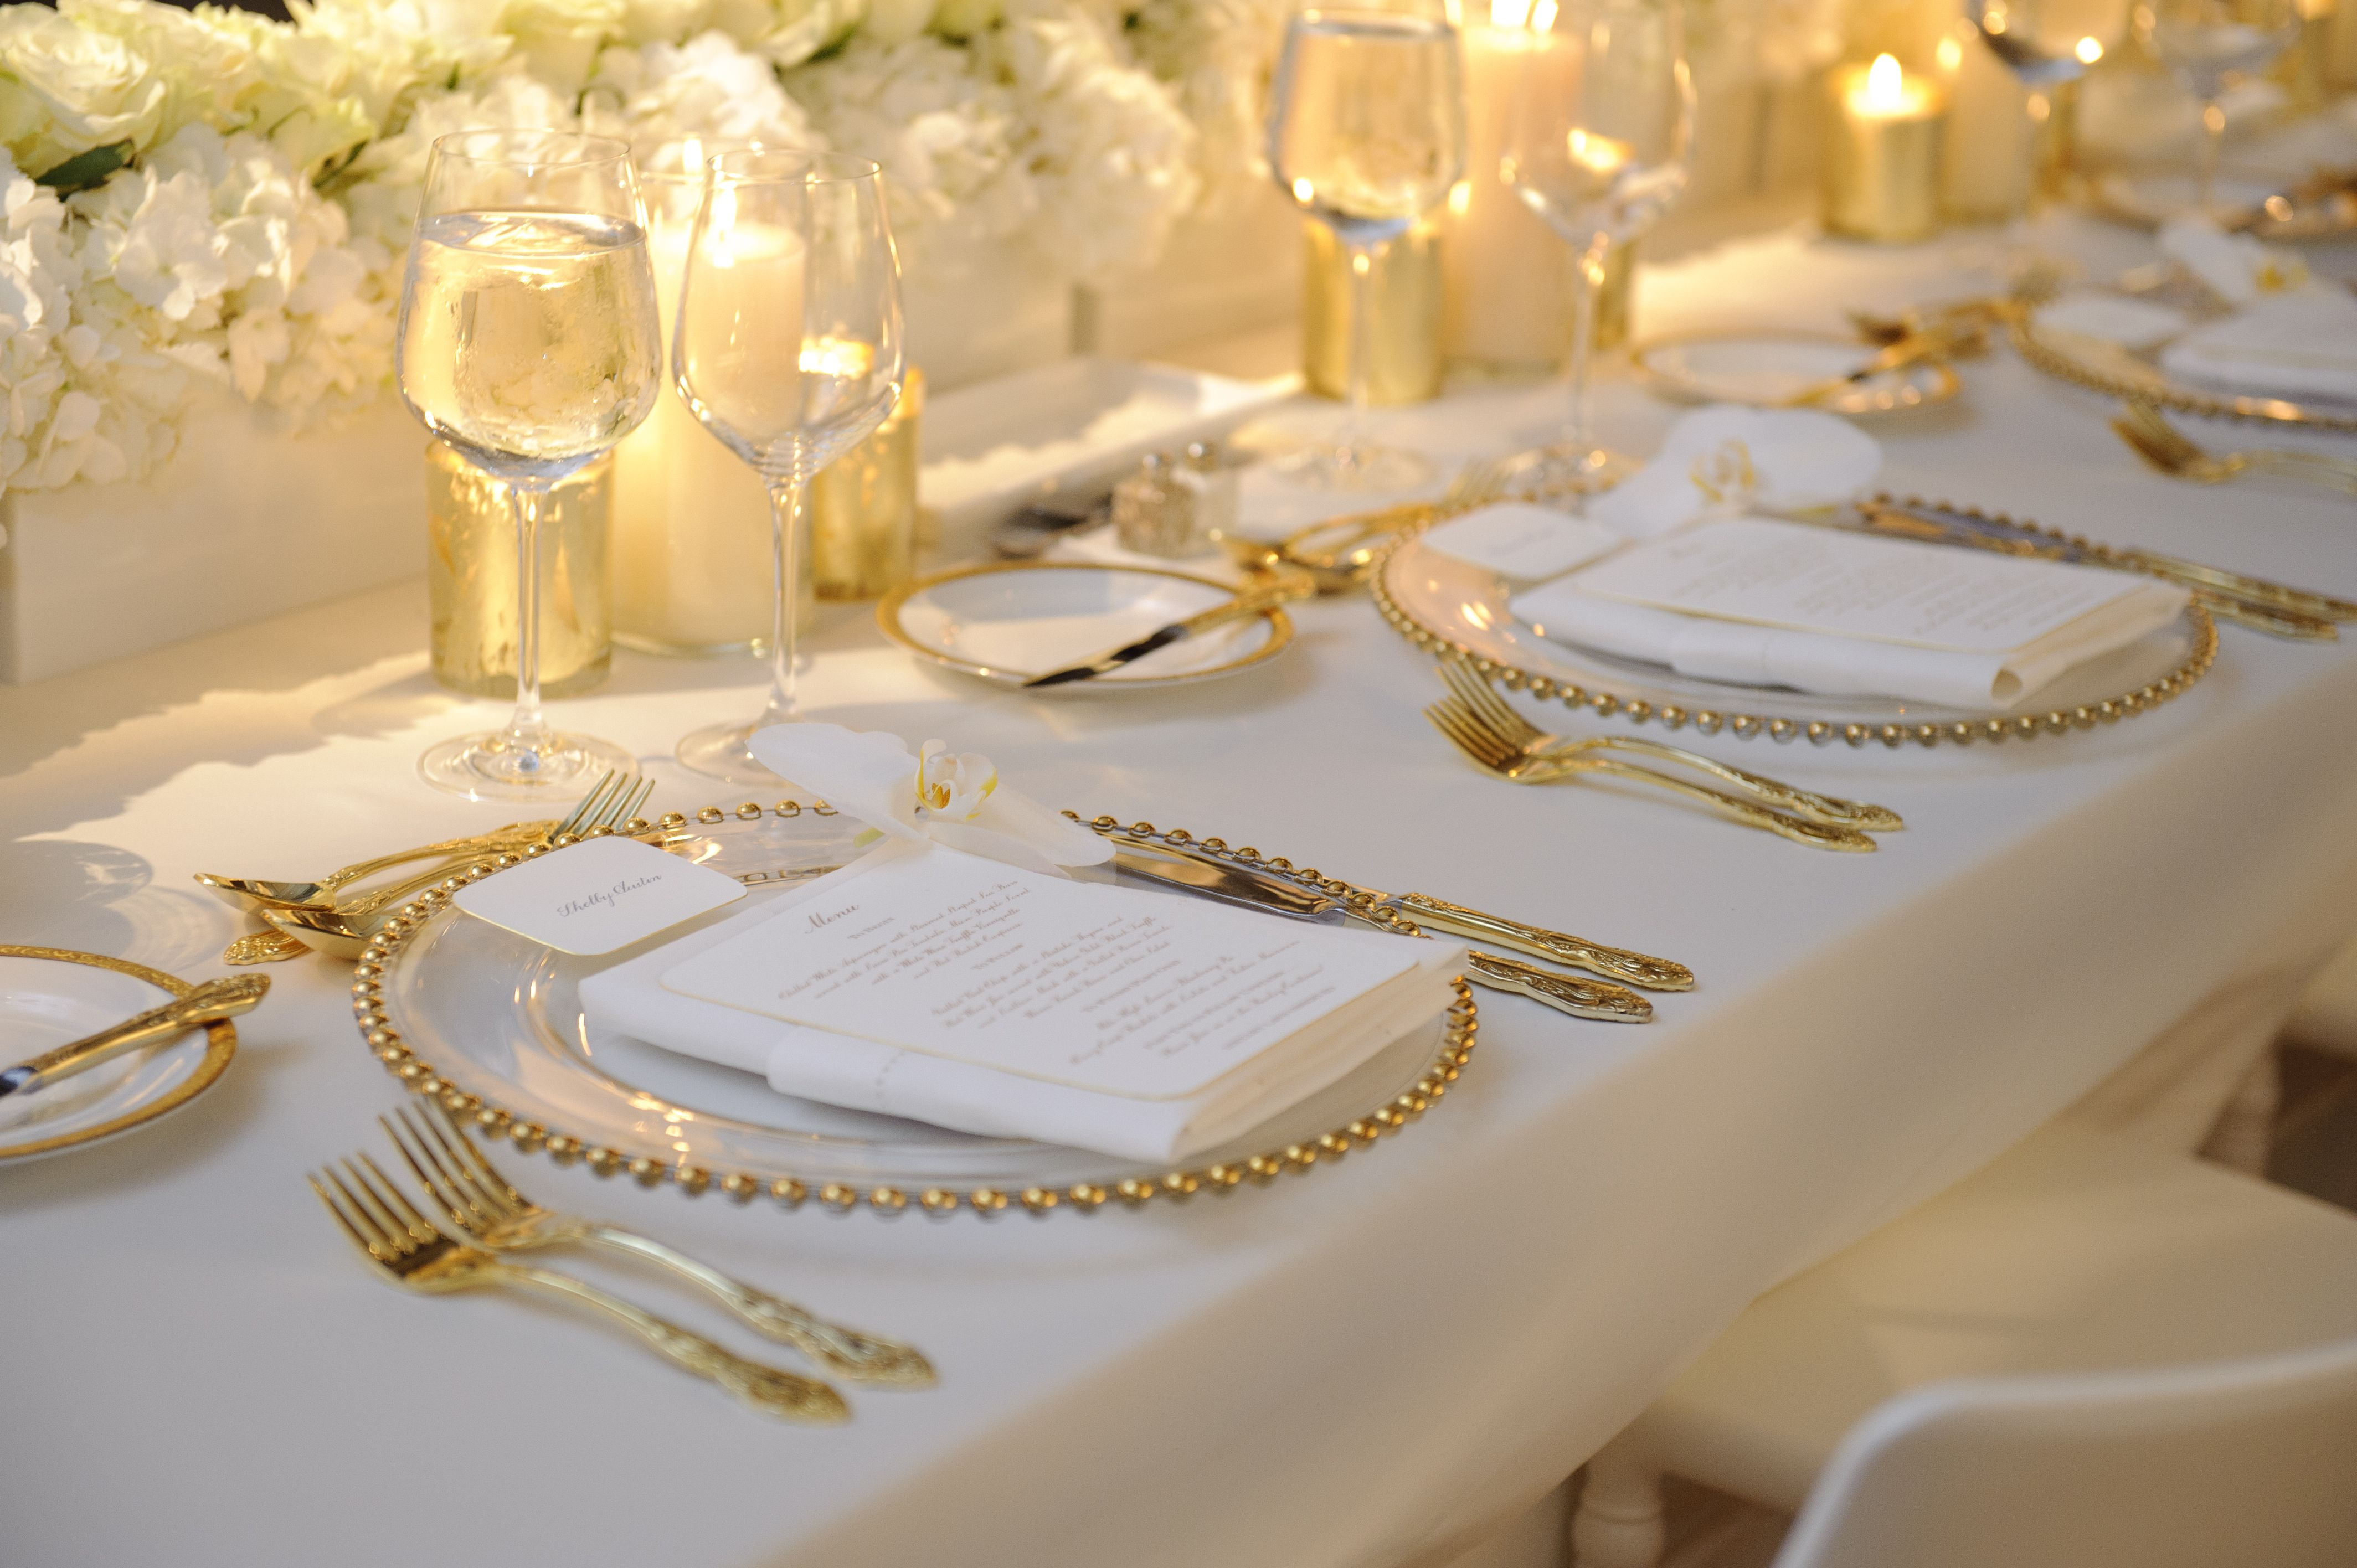 Plate Liner Gold/Glass Bead, Regal Gold Flatware, Dolce